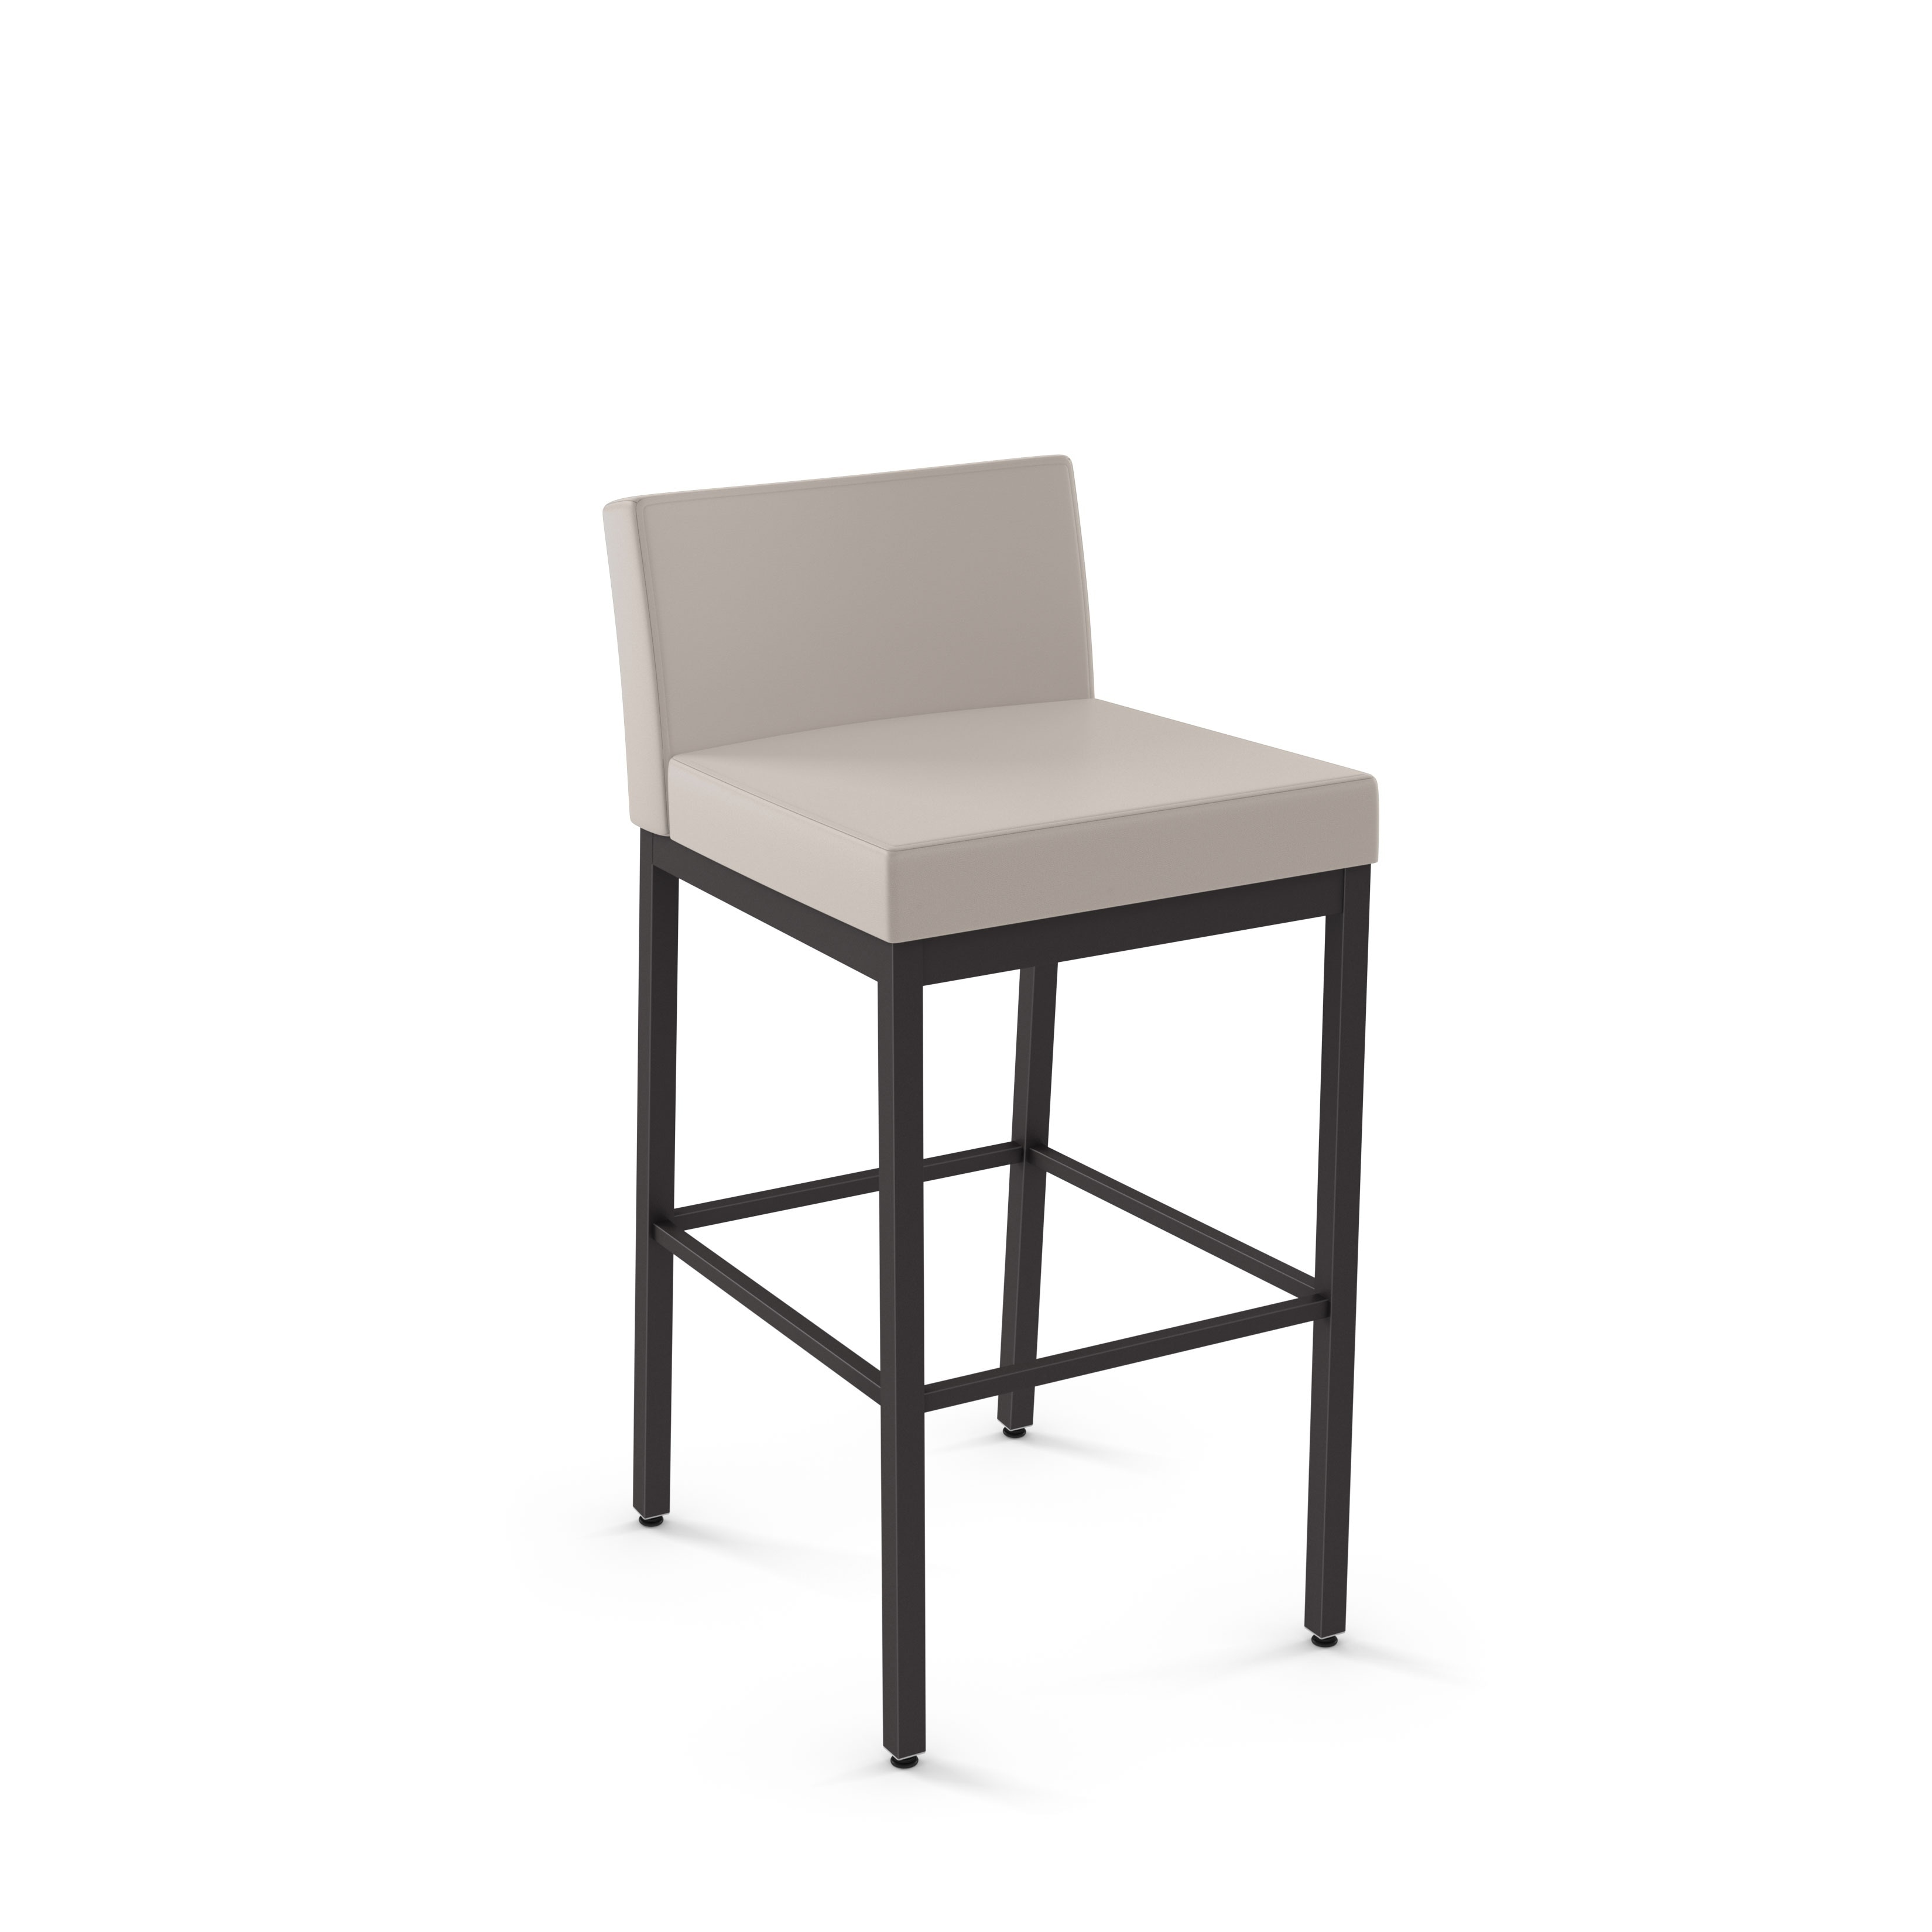 Awesome Amisco Fairfield Metal Counter Stool Bralicious Painted Fabric Chair Ideas Braliciousco